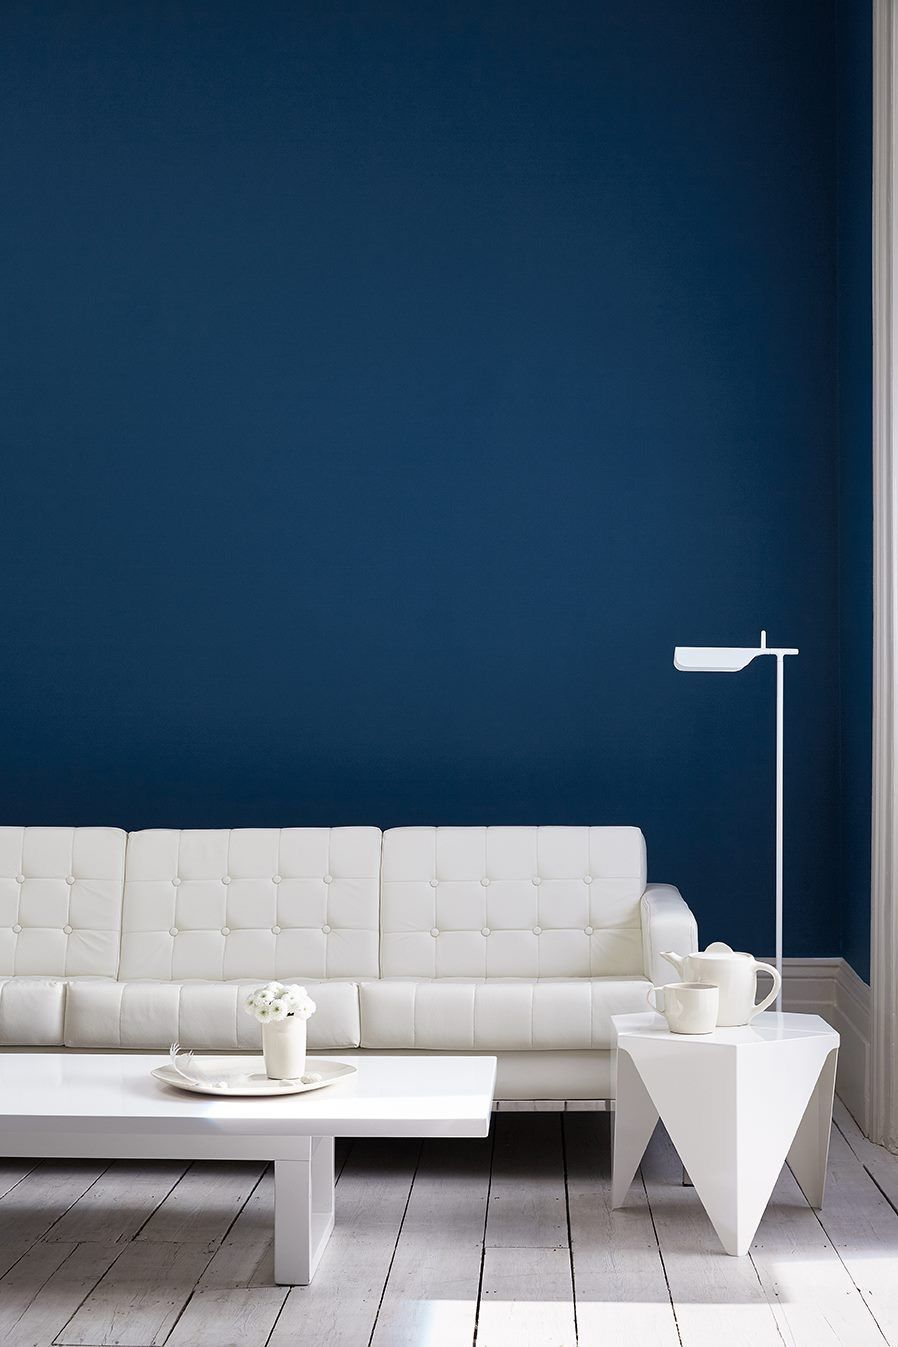 Royal Navy Color 275 From The Little Green Paint Company S Blue Collection Www Littlegreen Com Marble Counterto